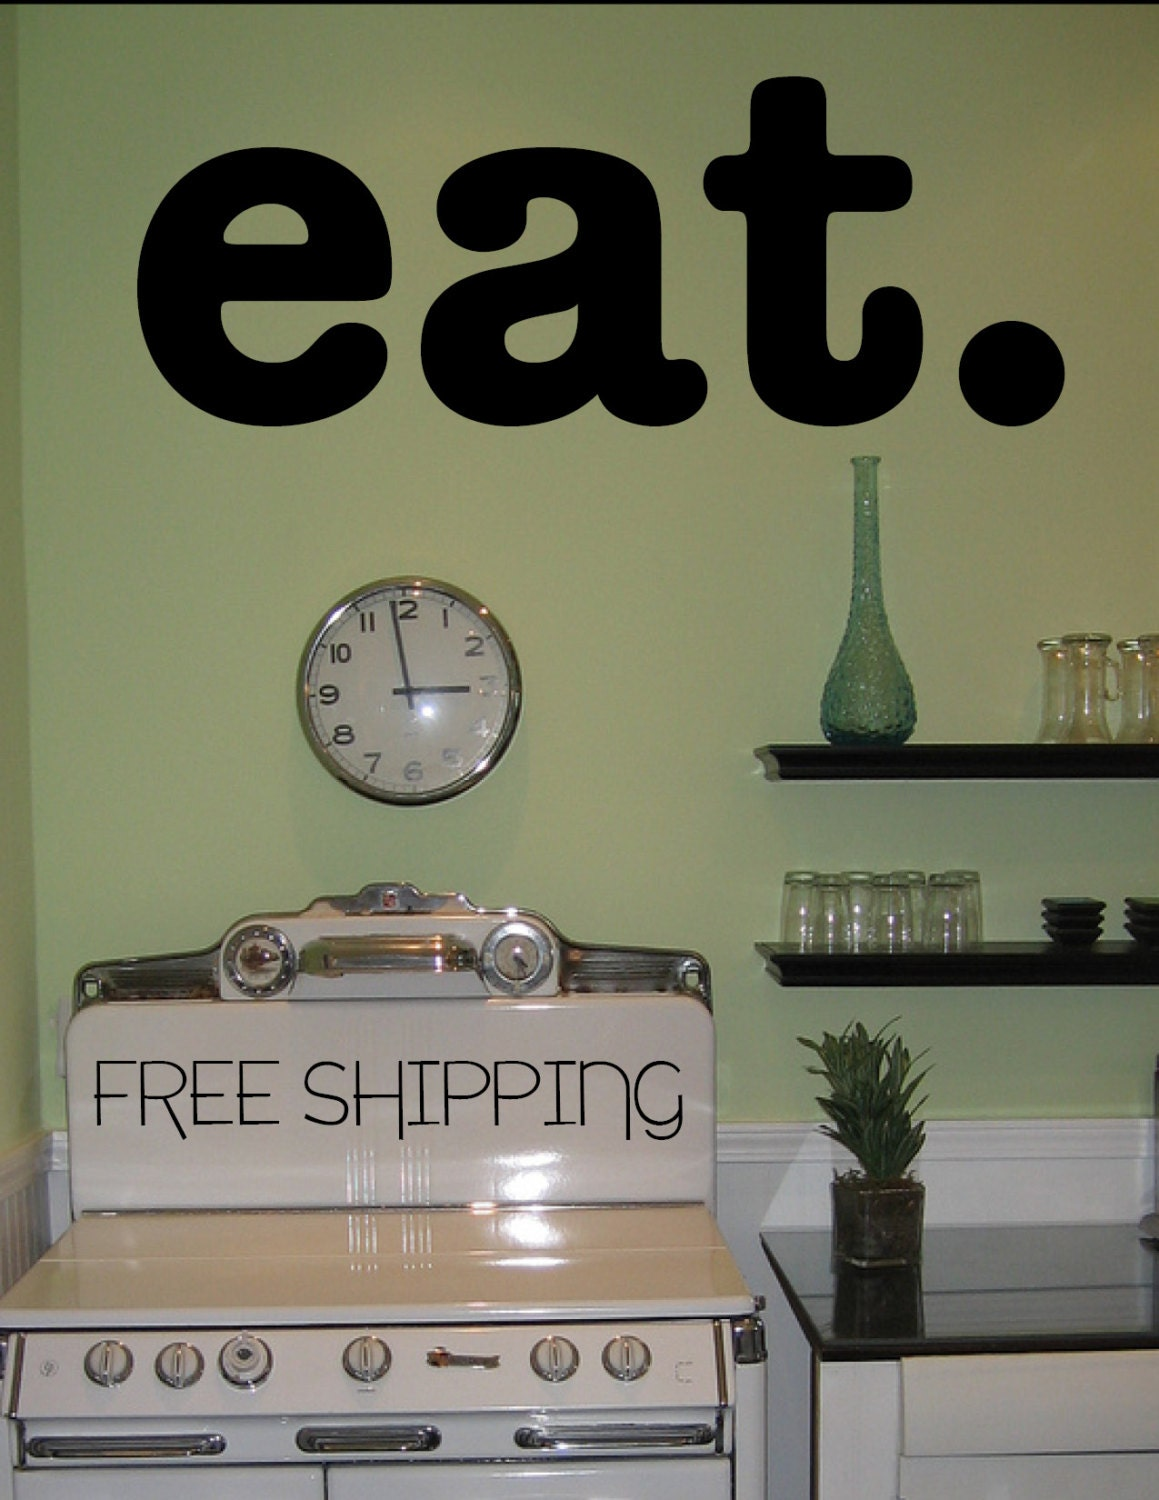 Cute Wall Decor For Kitchen : Eat wall vinyl decal sticker cute kitchen home decor